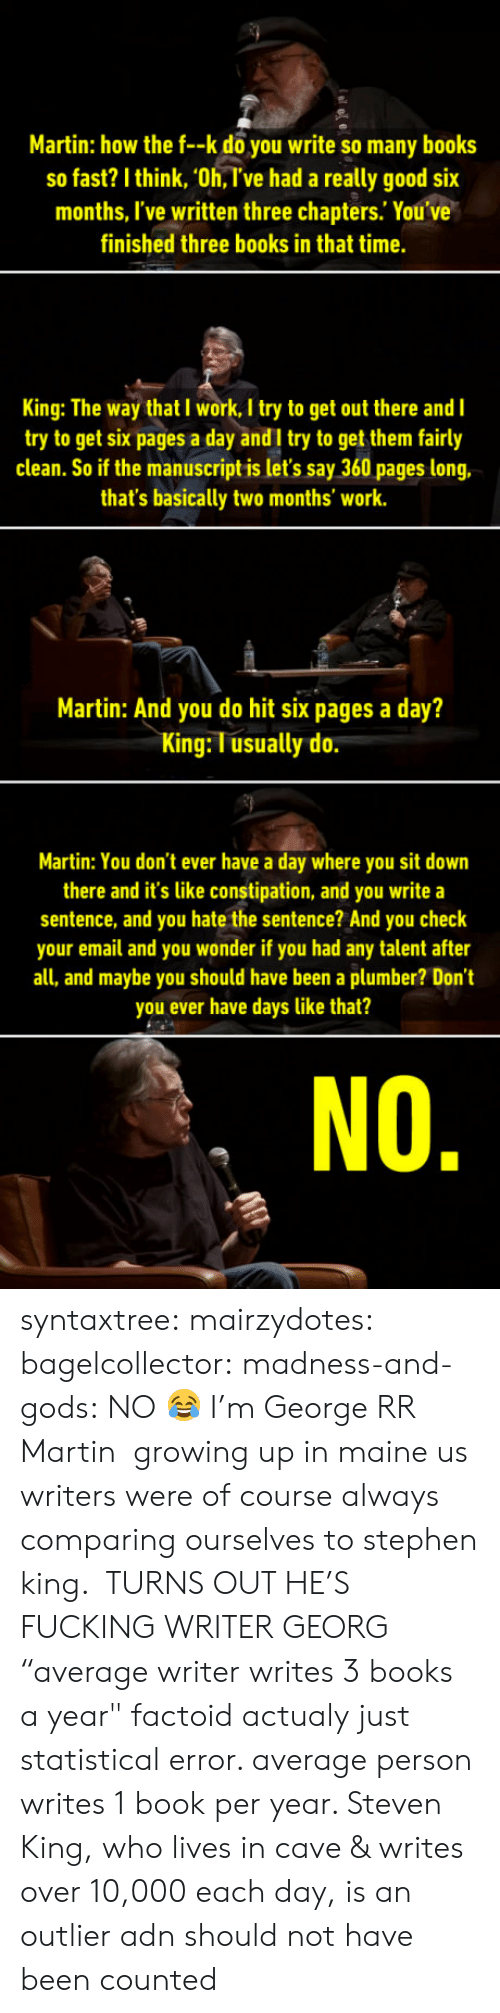 """Books, Fucking, and Growing Up: Martin: how the f--k do you write so many books  so fast? I think, 'Oh, T've had a really good six  months, I've written three chapters. You ve  finished three books in that time.  King: The way that I work, I try to get out there and I  try to get six pages a day andI try to get them fairly  clean. So if the manuscript is let's say 360 pages long,  that's basically two months' work.  Martin: And you do hit six pages a day?  King: T usually do  Martin: You don't ever have a day where you sit down  there and it's like constipation, and you write a  sentence, and you hate the sentence? And you check  your email and you wonder if you had any talent after  all, and maybe you should have been a plumber? Don't  you ever have days like that?  NO syntaxtree: mairzydotes:  bagelcollector:  madness-and-gods: NO 😂 I'm George RR Martin  growing up in maine us writers were of course always comparing ourselves to stephen king. TURNS OUT HE'S FUCKING WRITER GEORG  """"average writer writes 3 books a year"""" factoid actualy just statistical error. average person writes 1 book per year. Steven King, who lives in cave & writes over 10,000 each day, is an outlier adn should not have been counted"""